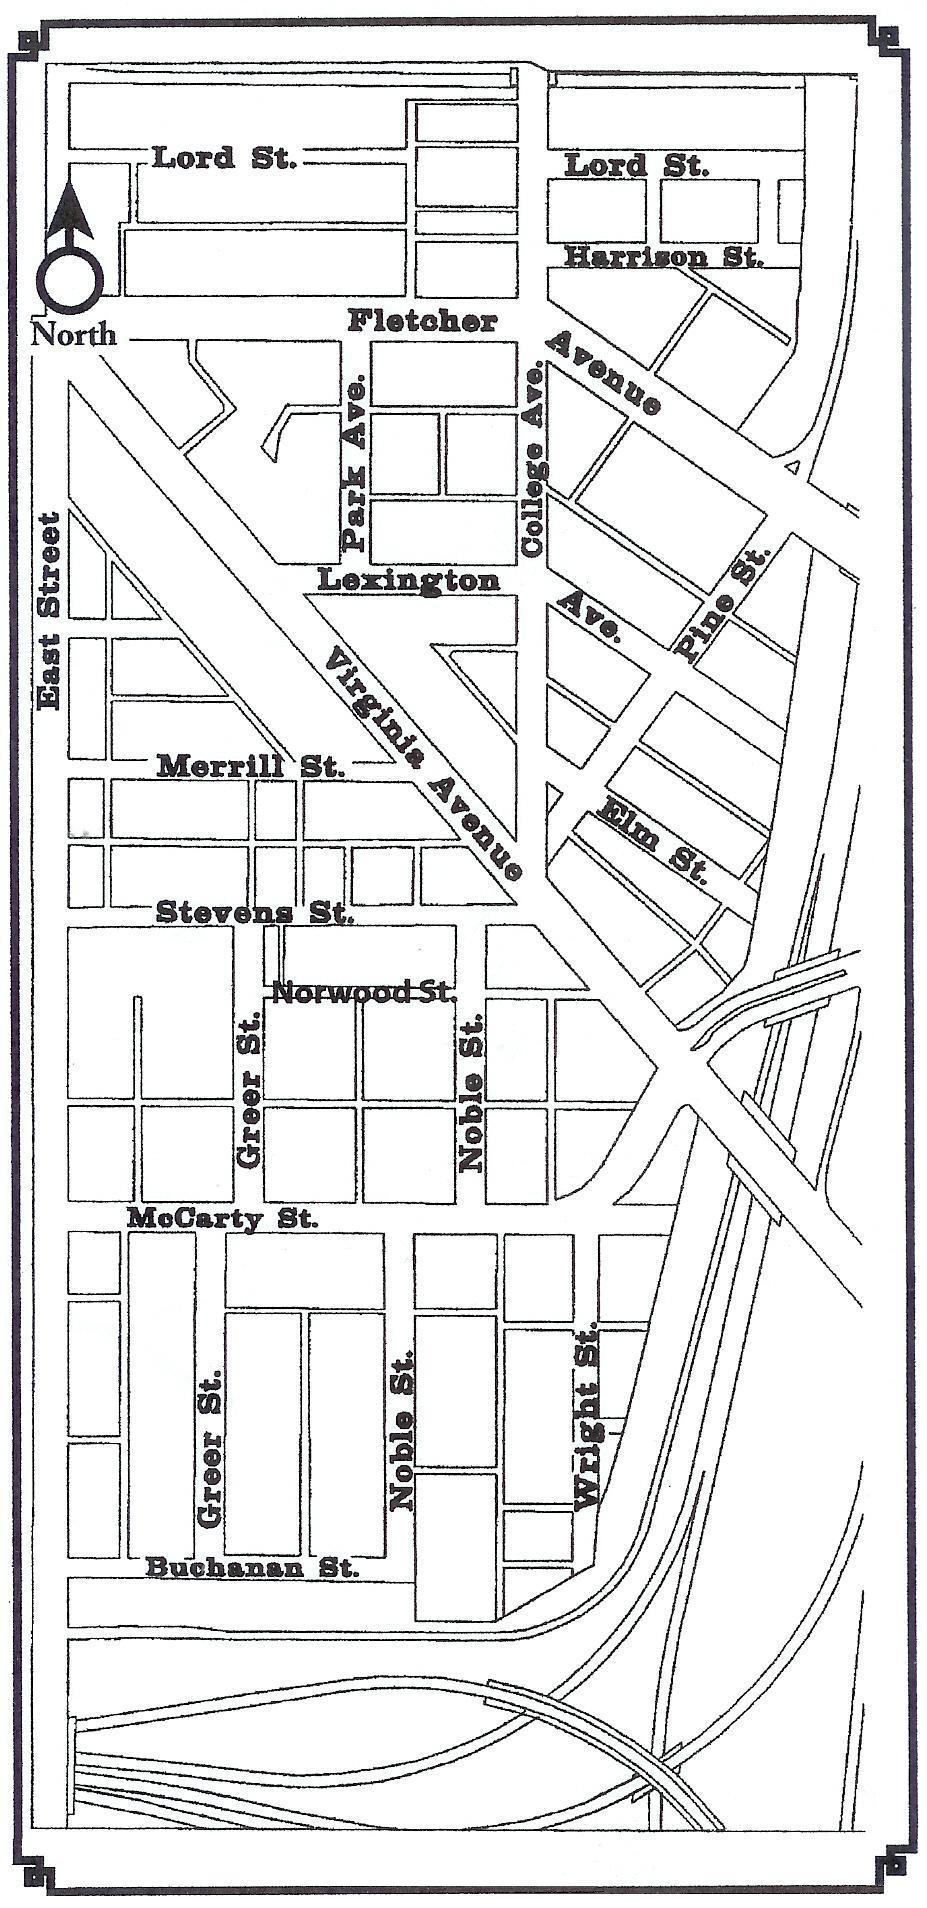 Neighborhood Street Map